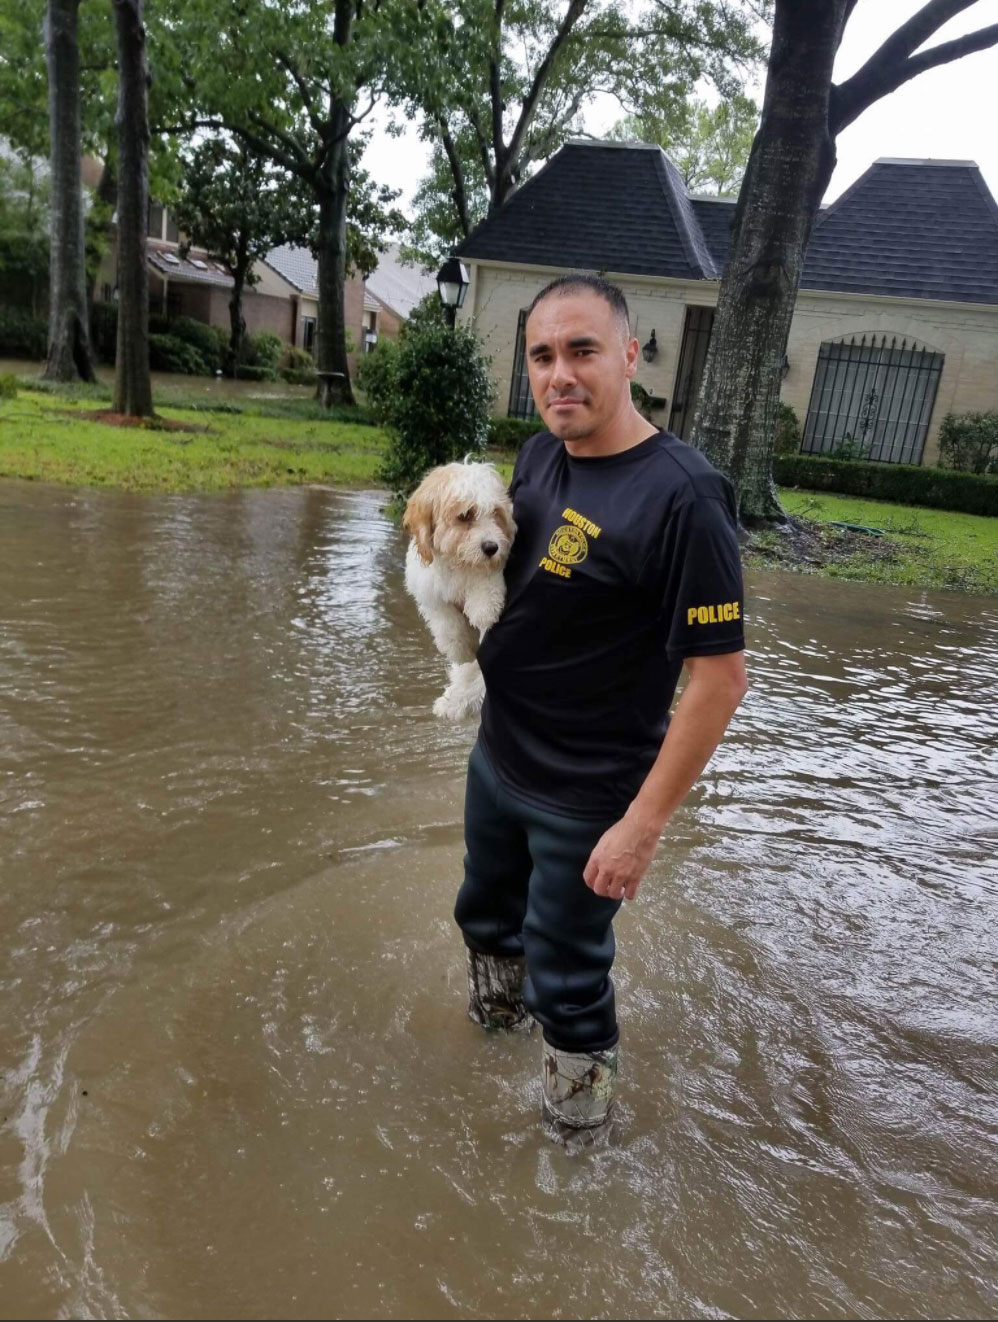 "<div class=""meta image-caption""><div class=""origin-logo origin-image none""><span>none</span></div><span class=""caption-text"">The Houston Police rescues a dog stranded by the flood. (houstonpolice/Twitter)</span></div>"